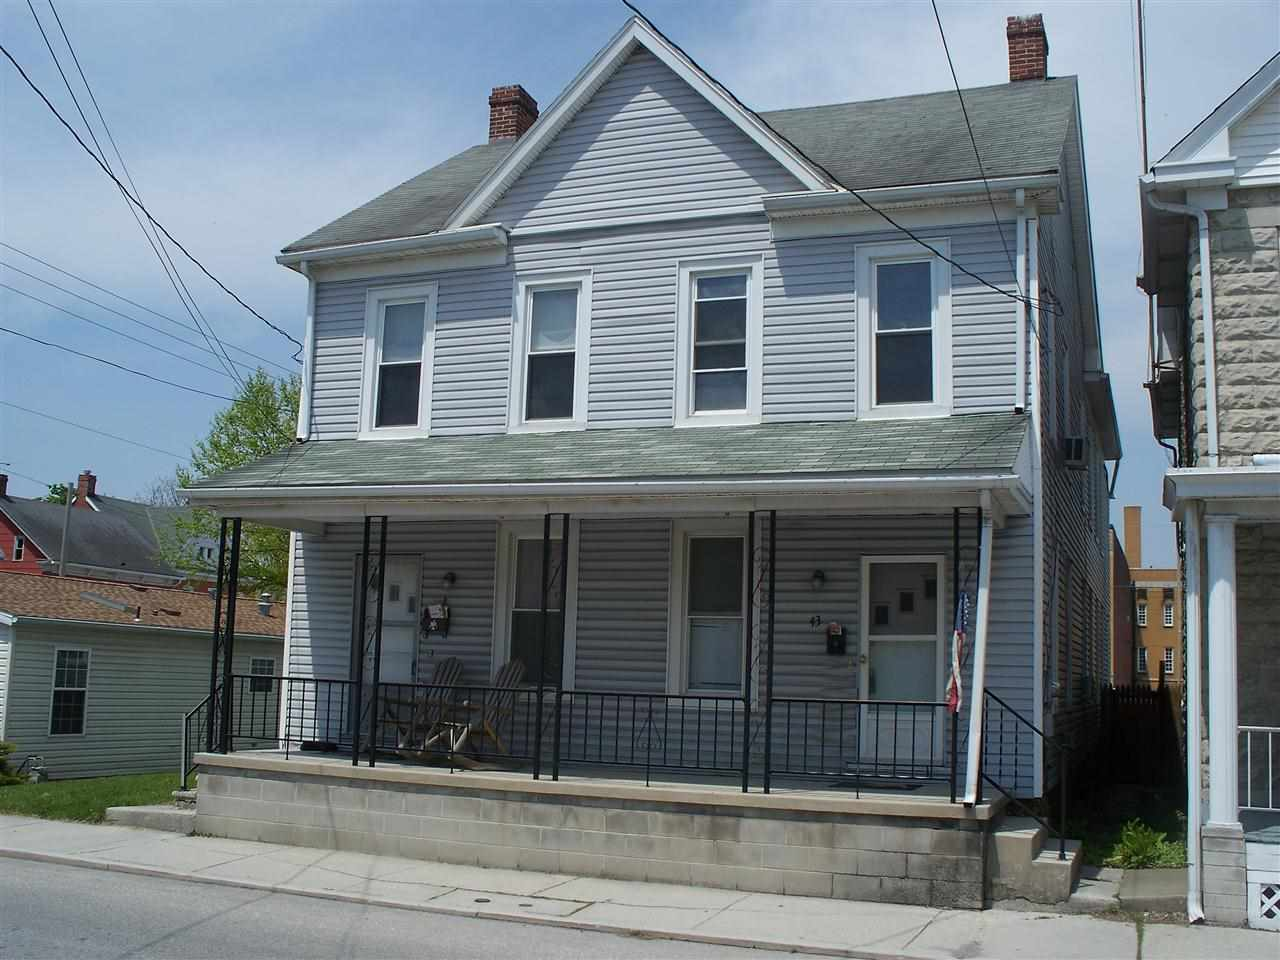 43 W Middle St, Hanover, PA 17331